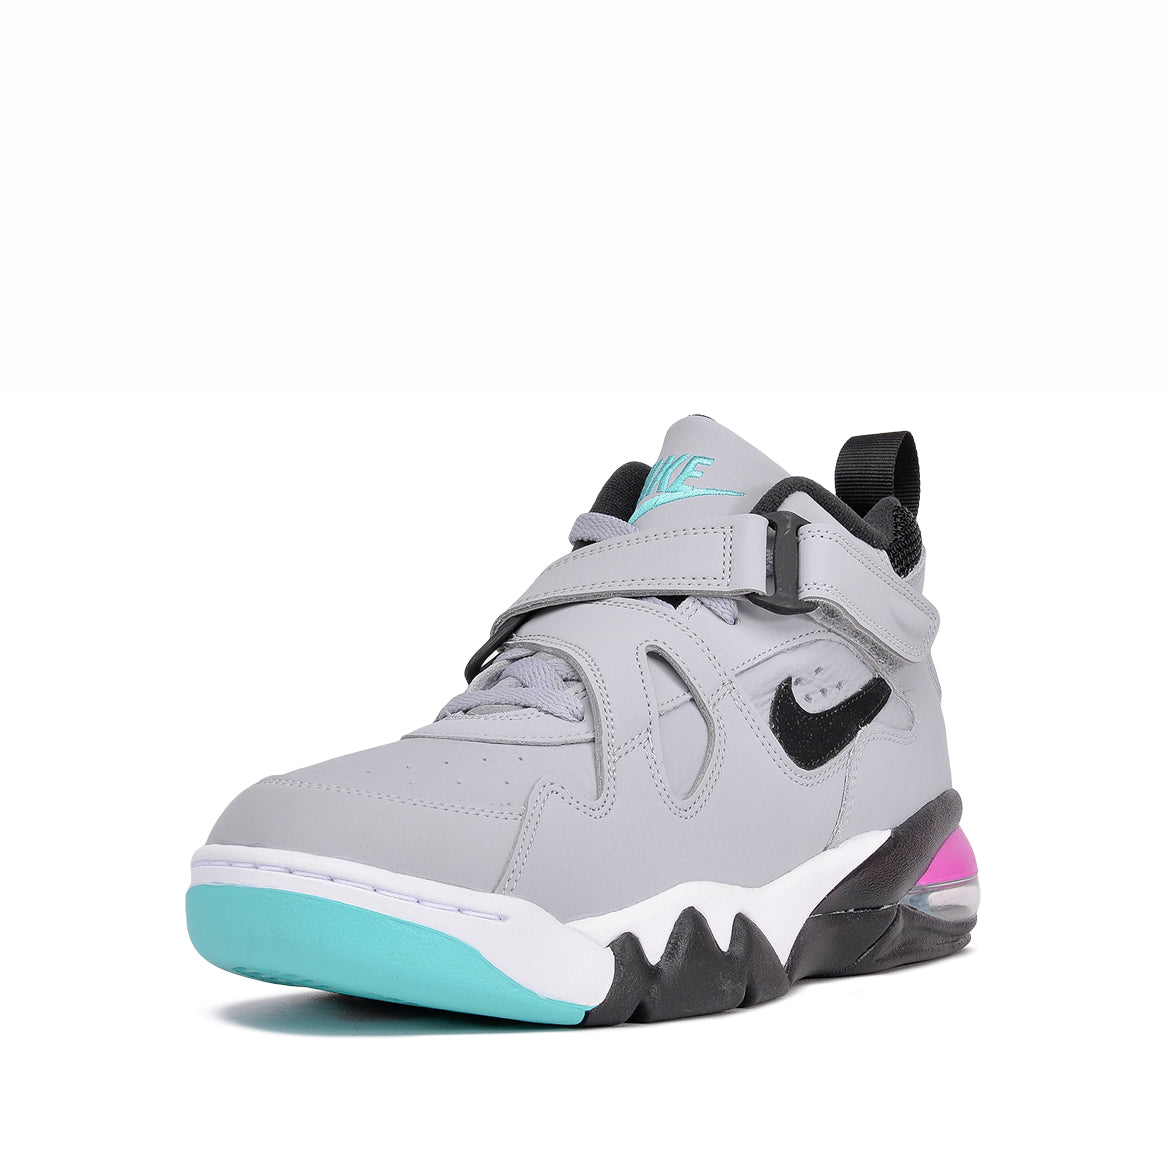 AIR FORCE MAX CB - WOLF GREY / LETHAL FUCHSIA